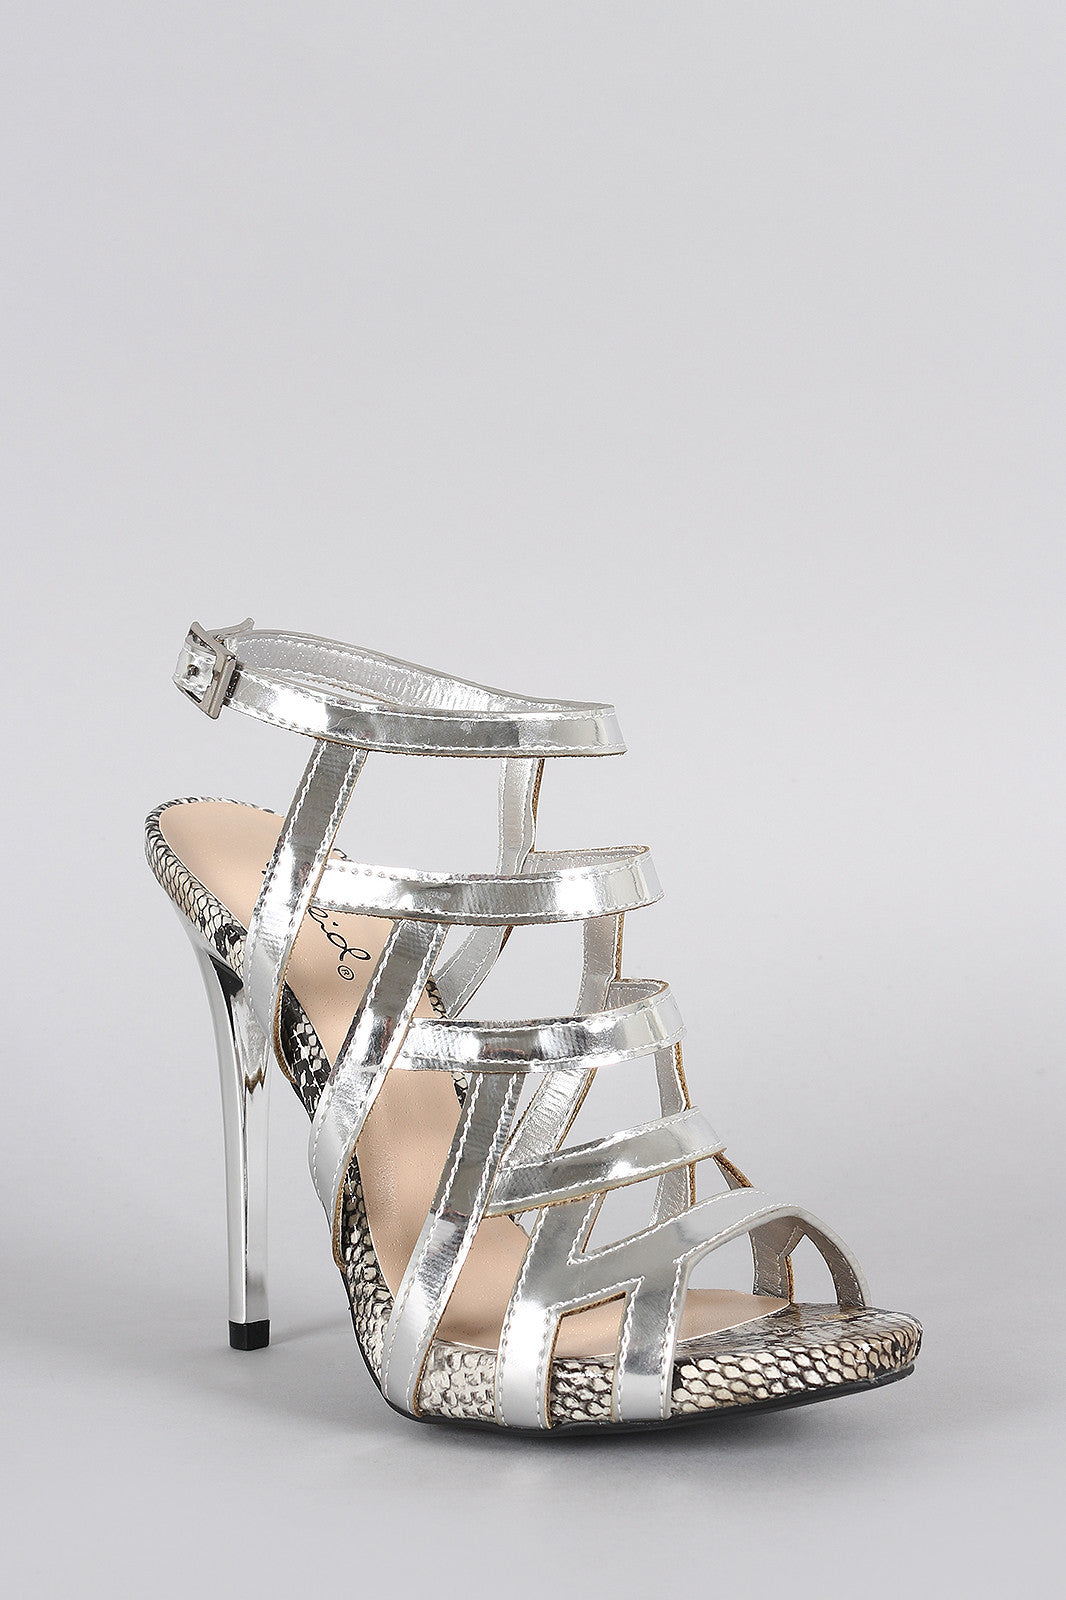 Qupid Metallic Strappy Snake Open Toe Stiletto Heel - Thick 'N' Curvy Shop - 5